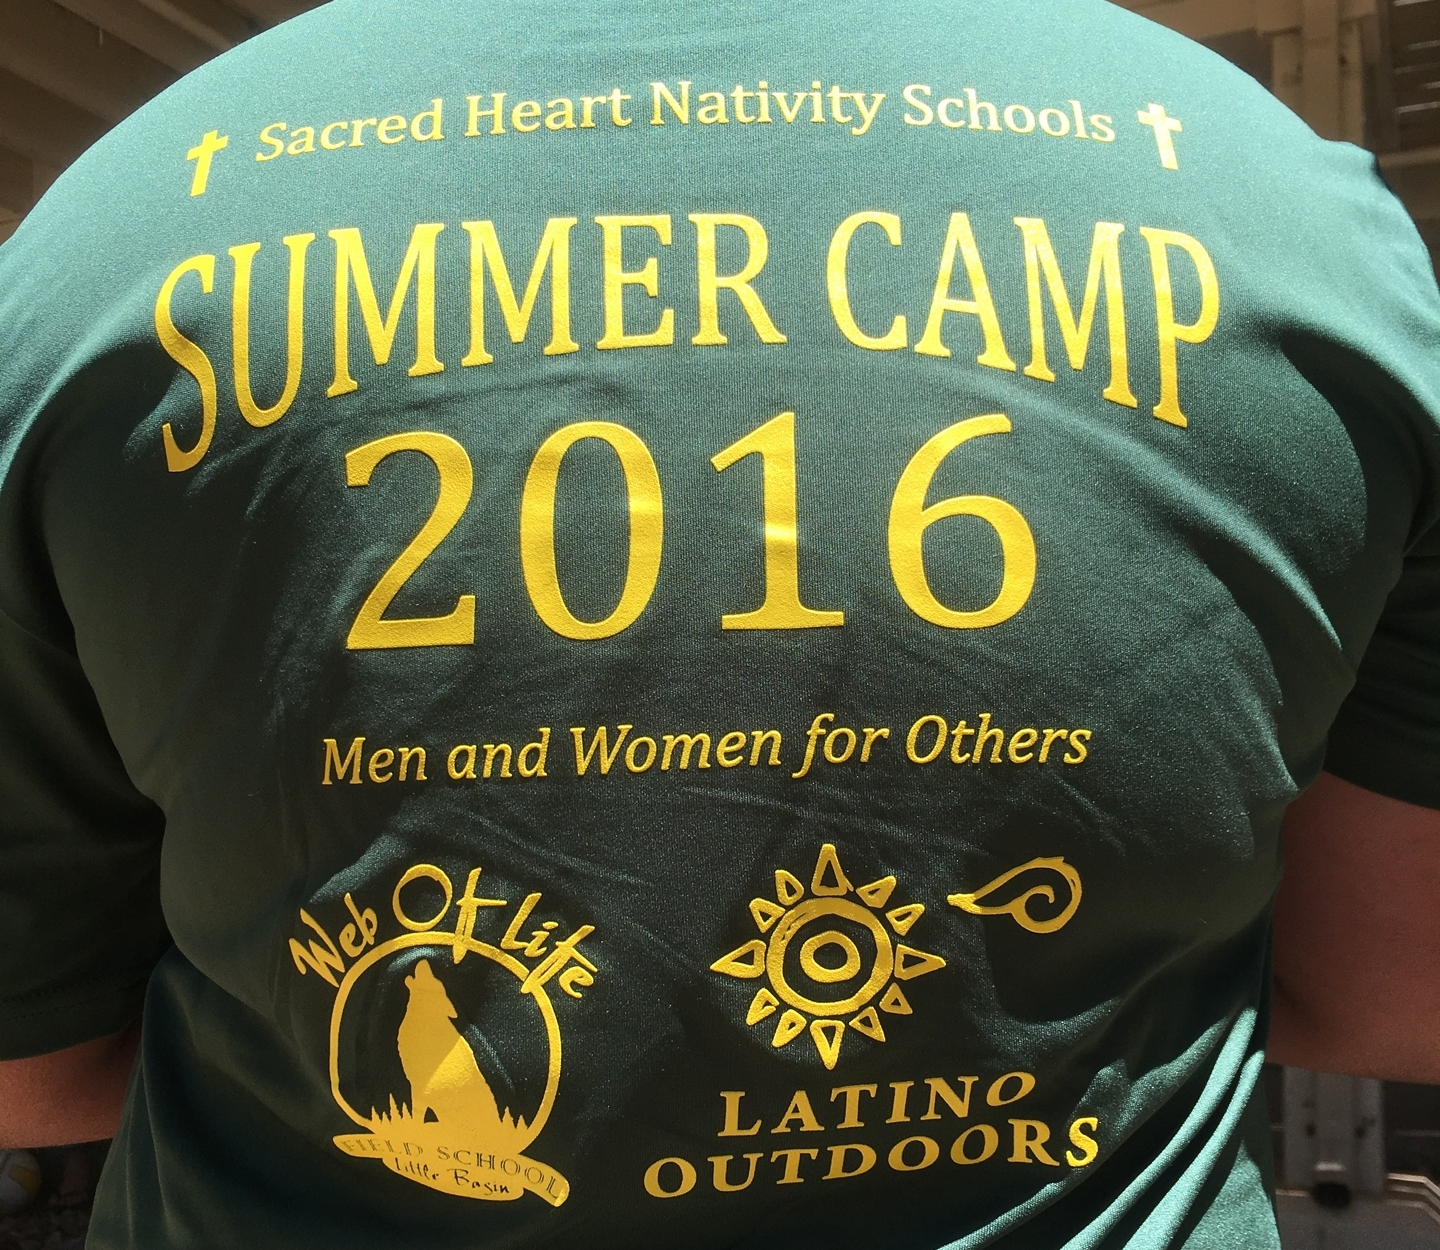 SHNS Summer Camp 2016 with WOLF School & Latino Outdoors.JPG